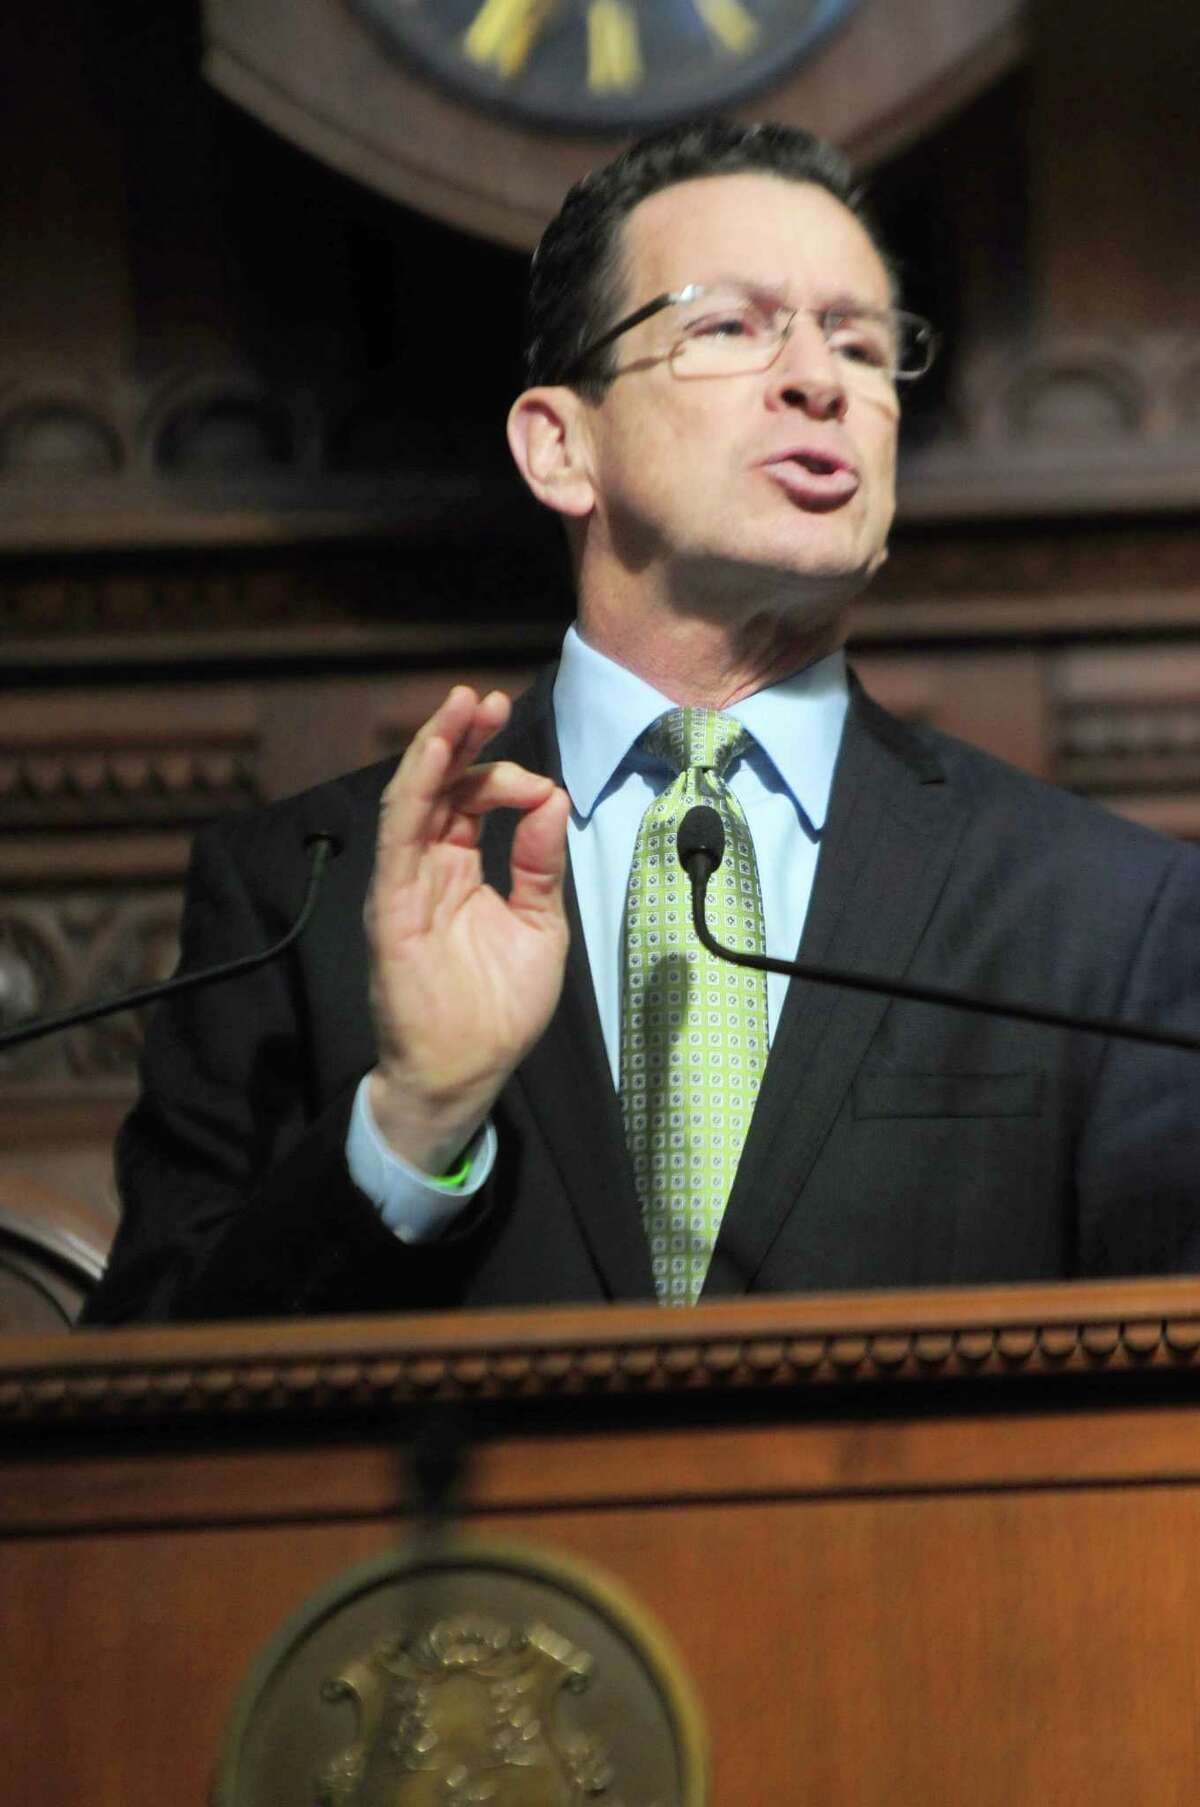 Governor Dannell P. Malloy gives his annual State of the State Address to a joint session of the Connecticut General Assembly on Thursday February 6, 2014 in the Hall of the House of Representatives in Hartford.